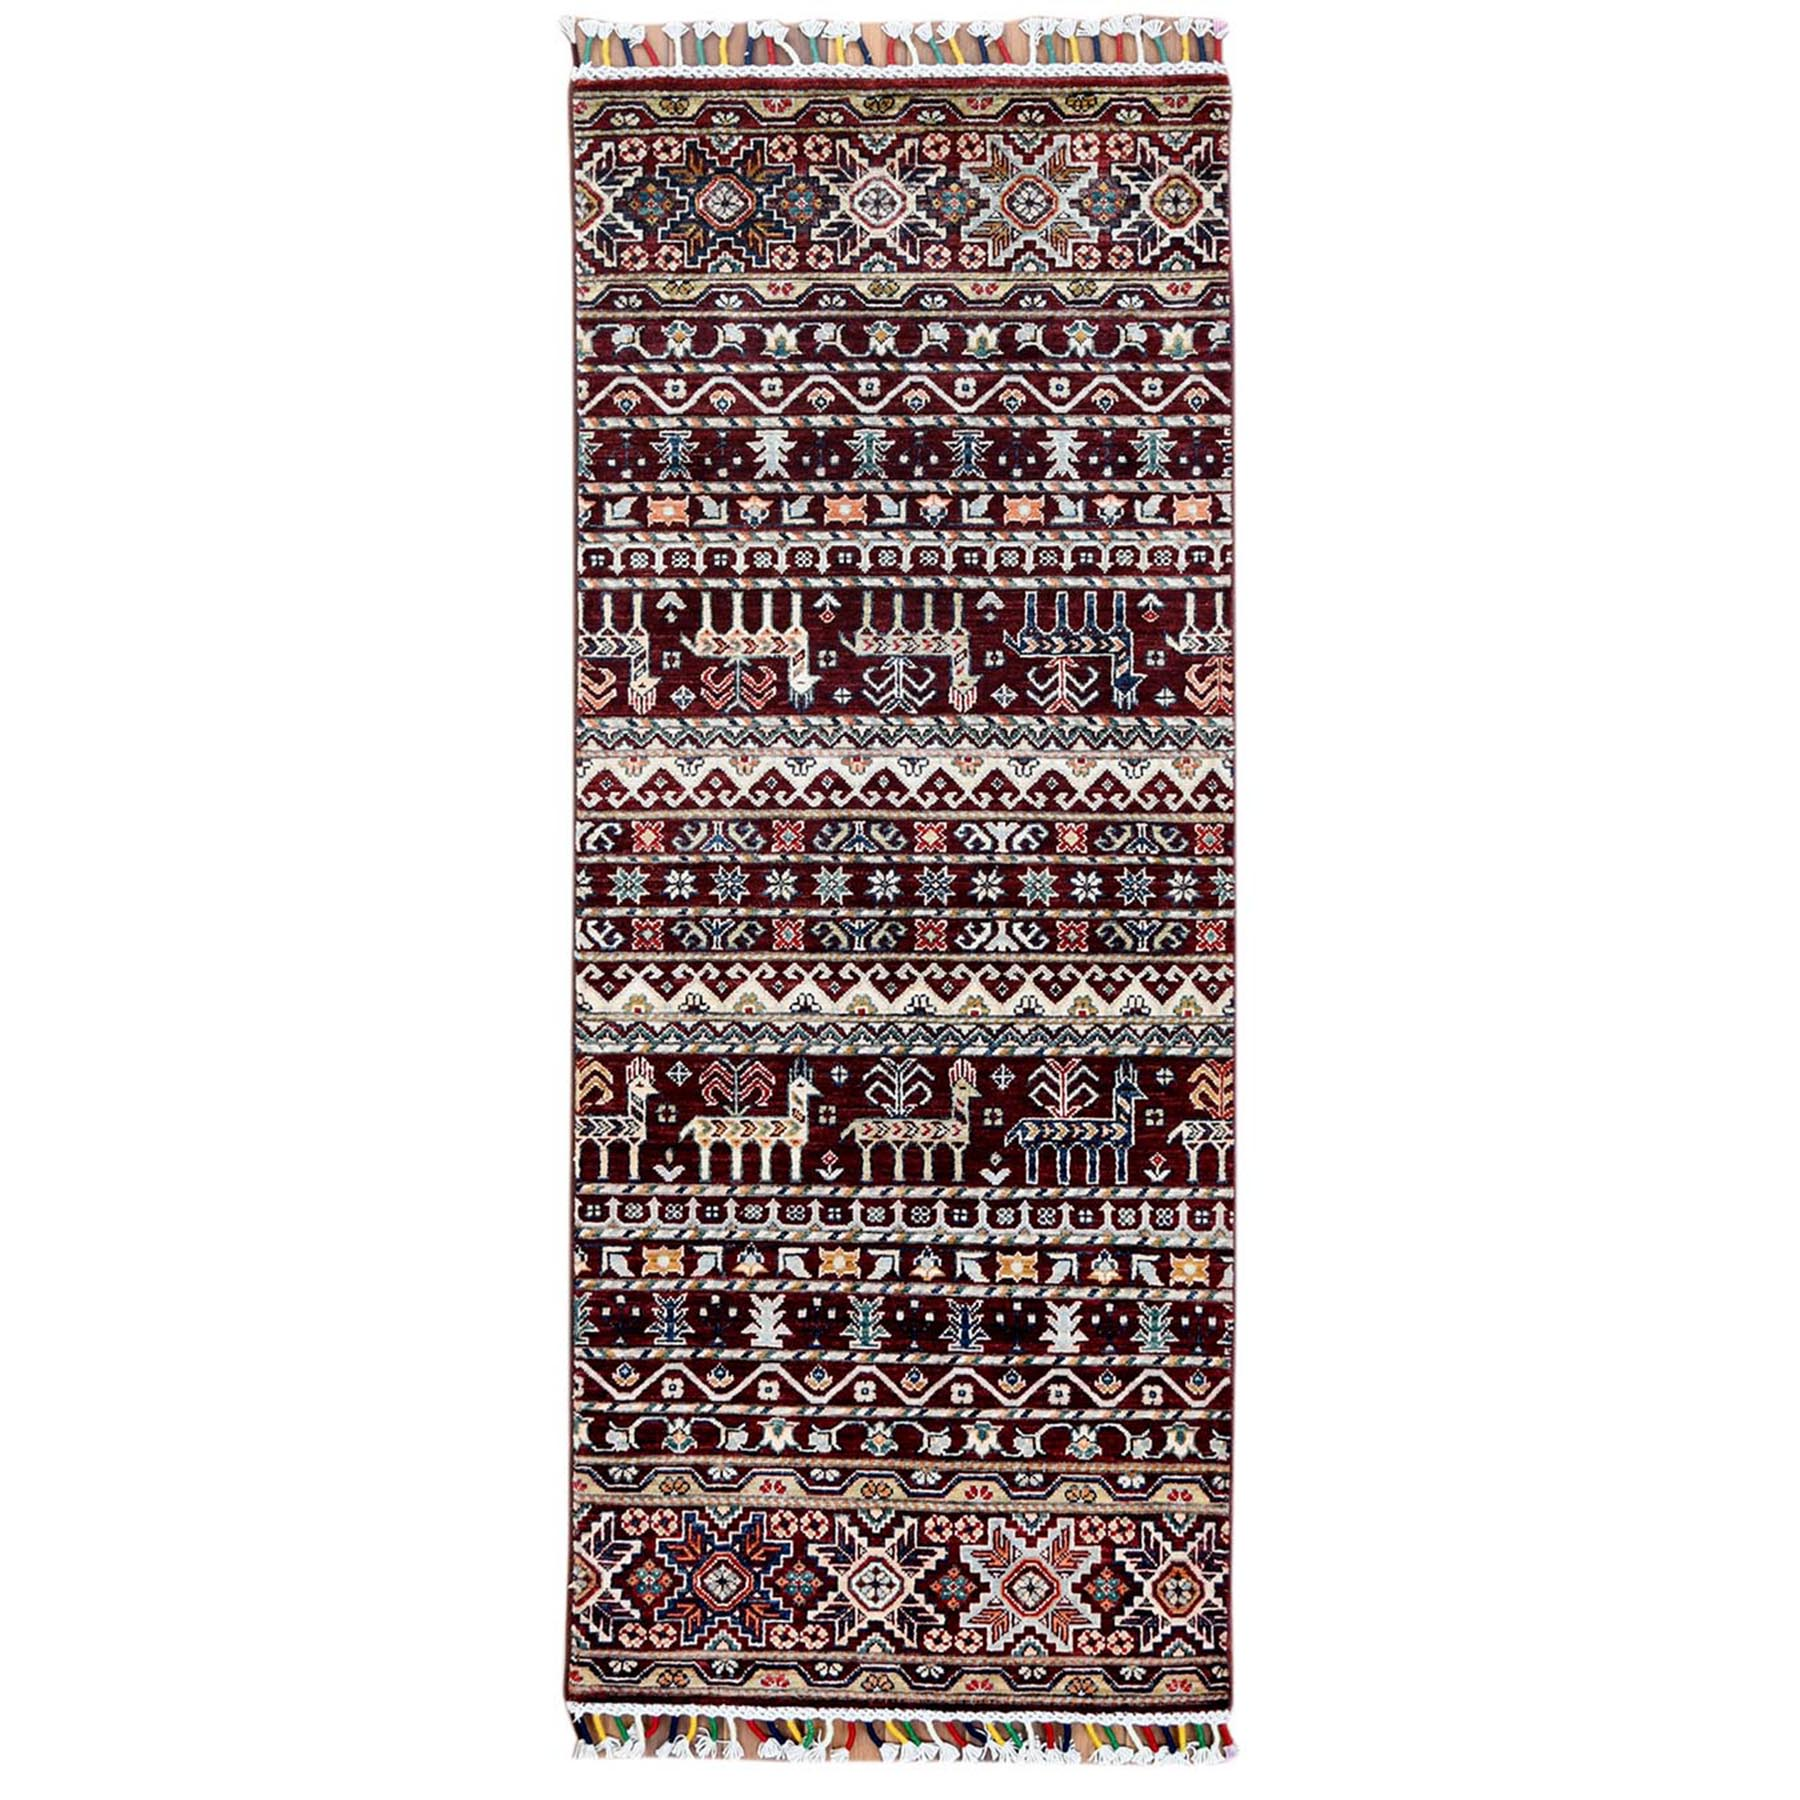 """2'6""""X6'3"""" Red With Colorful Tassles Hand Knotted Super Kazak Khorjin Design Pure Wool Oriental Runner Rug moa60bb6"""